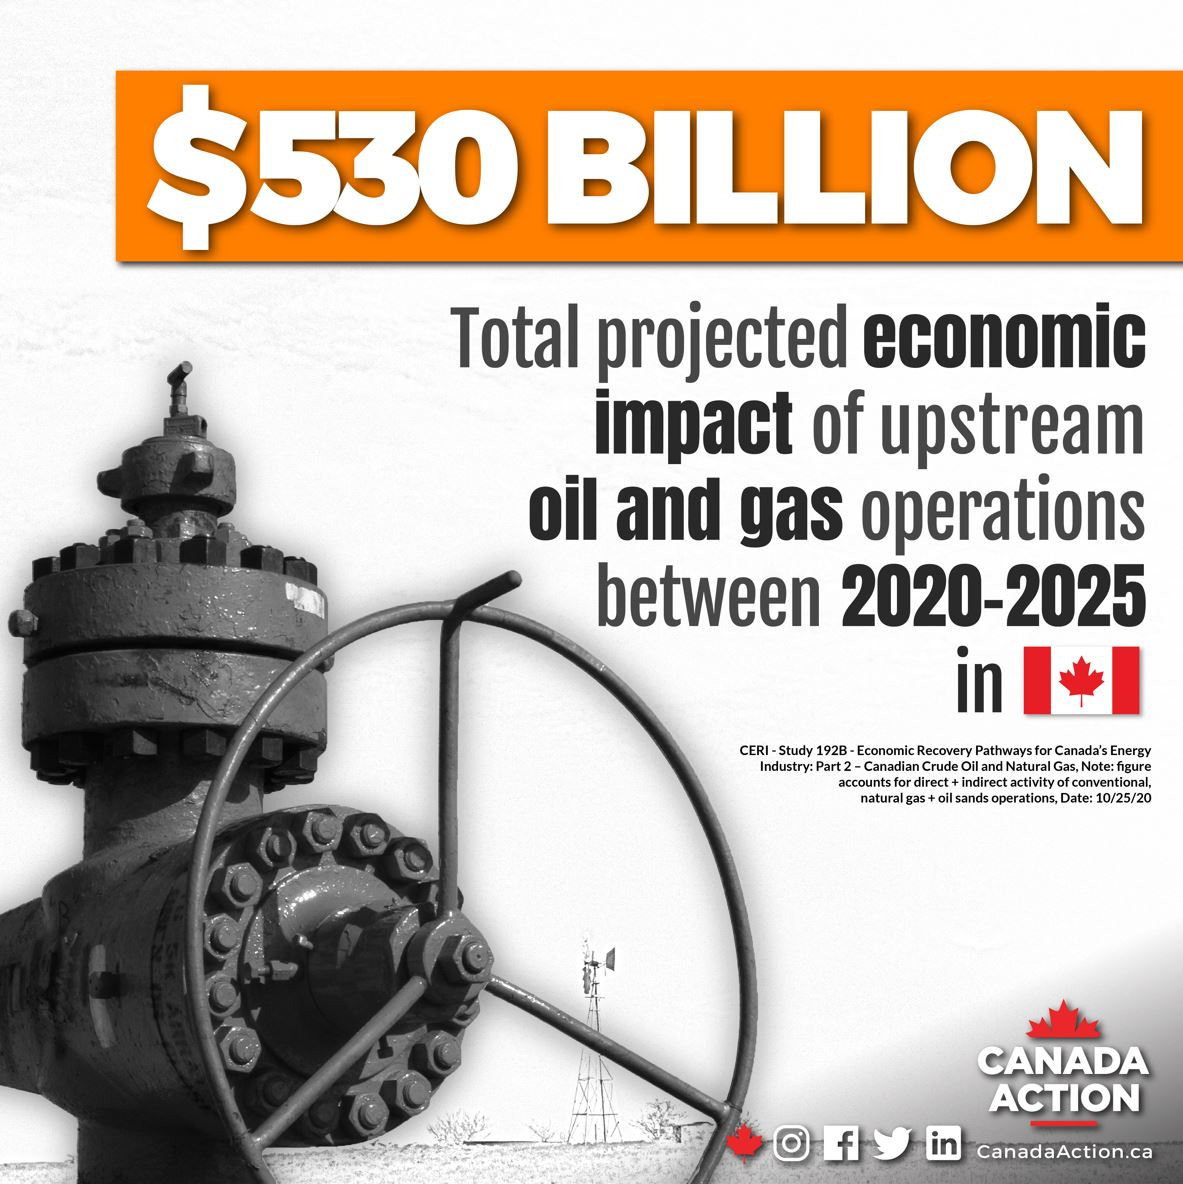 projected economic contribution of oil and gas to canada's economy 2020-2025